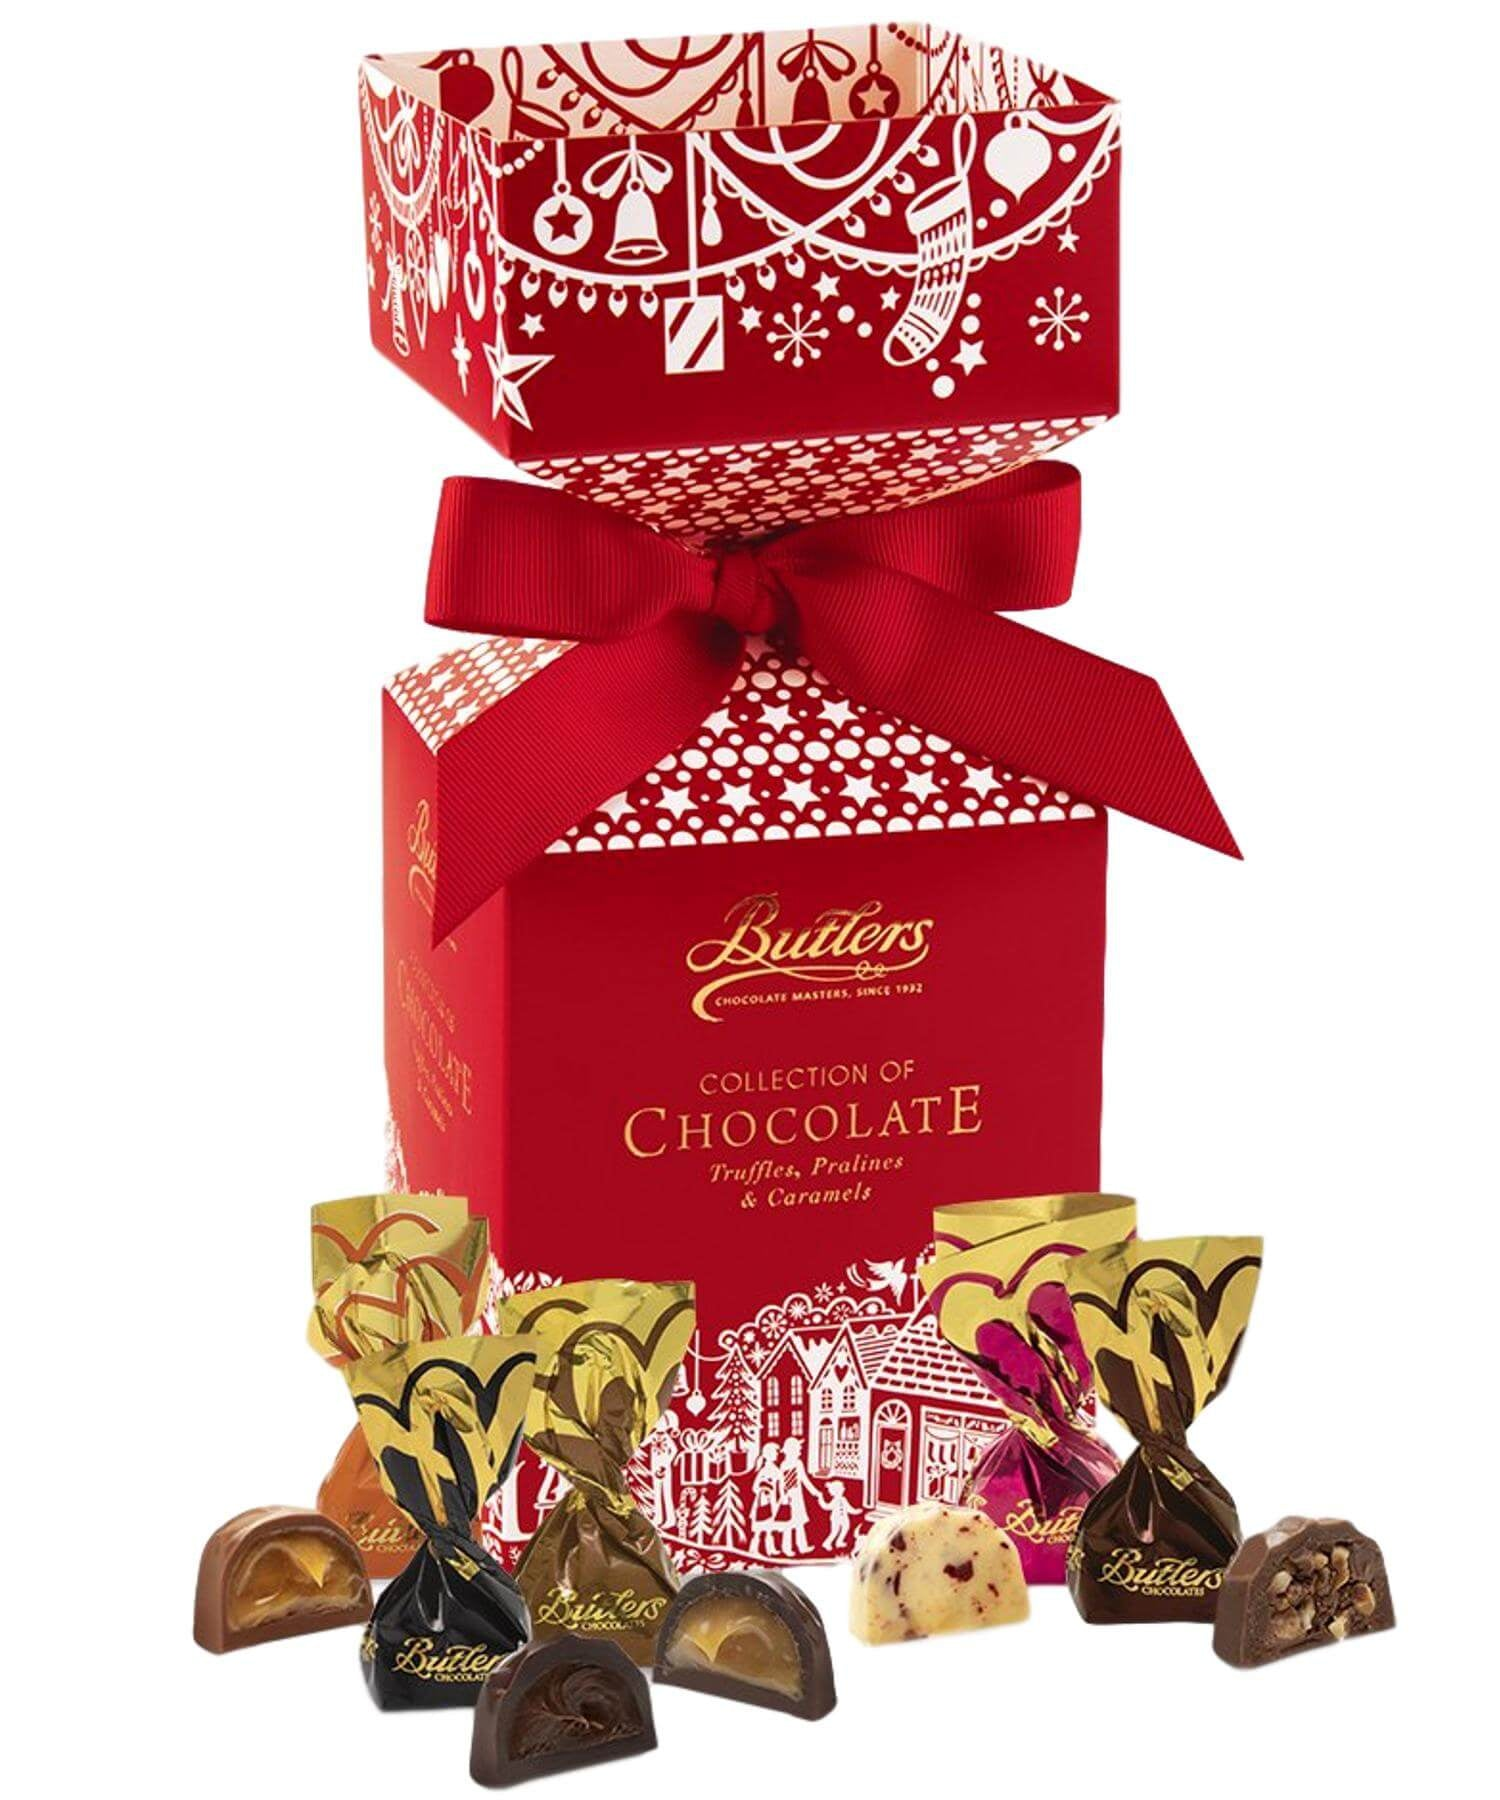 Yuletide Cracker - [Butlers Chocolate] - Food Gifts - Irish Gifts